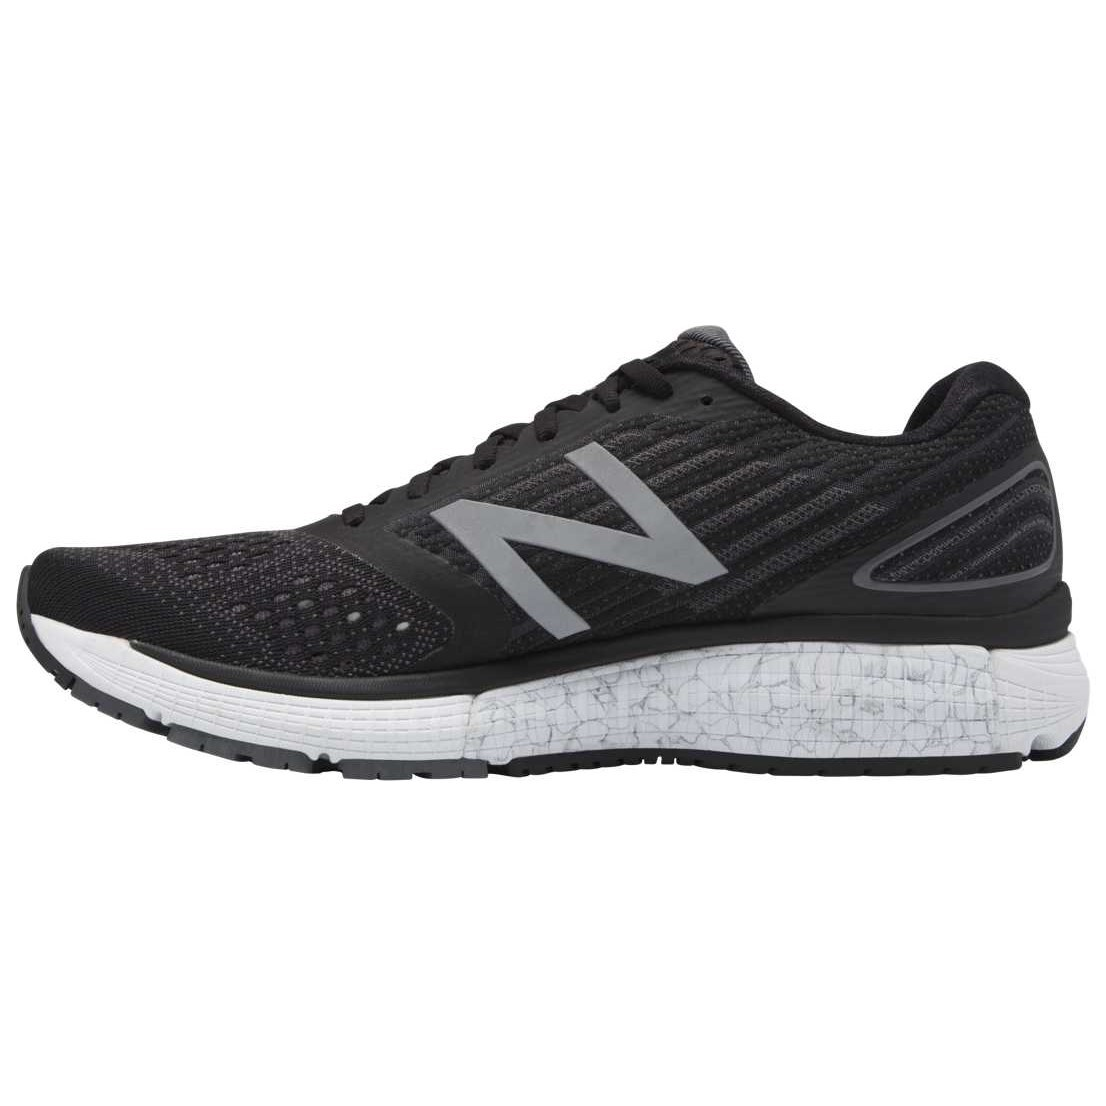 innovative design d11cb 1df60 New Balance 860v9 - Mens Running Shoes - Black Dark Grey